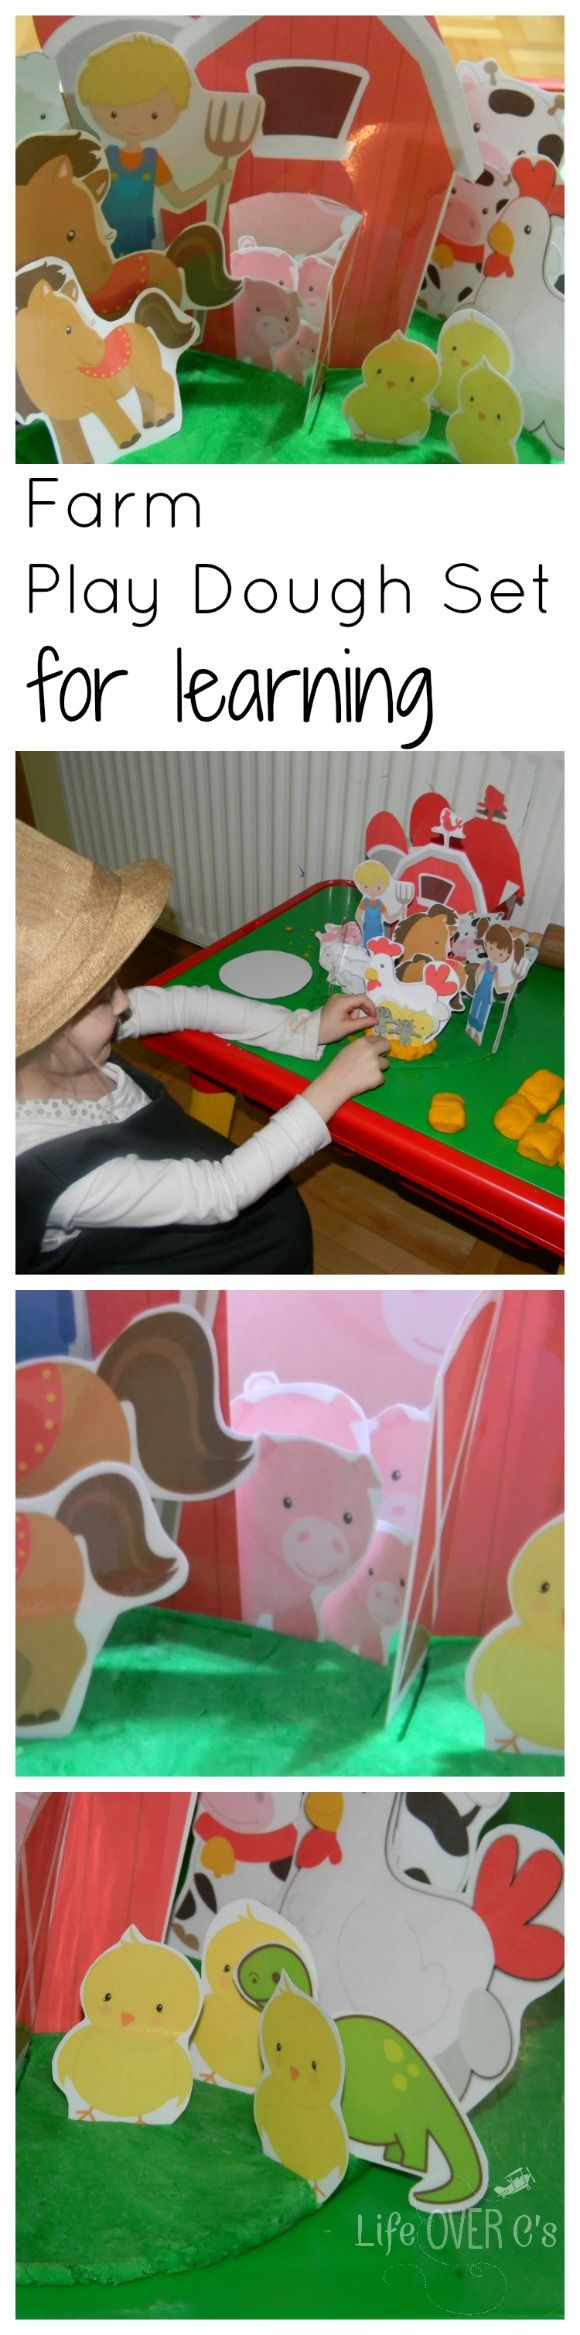 Interactive Farm Scenery for Play Dough with QR code conversation task cards PLUS bonus FREE Puzzles $